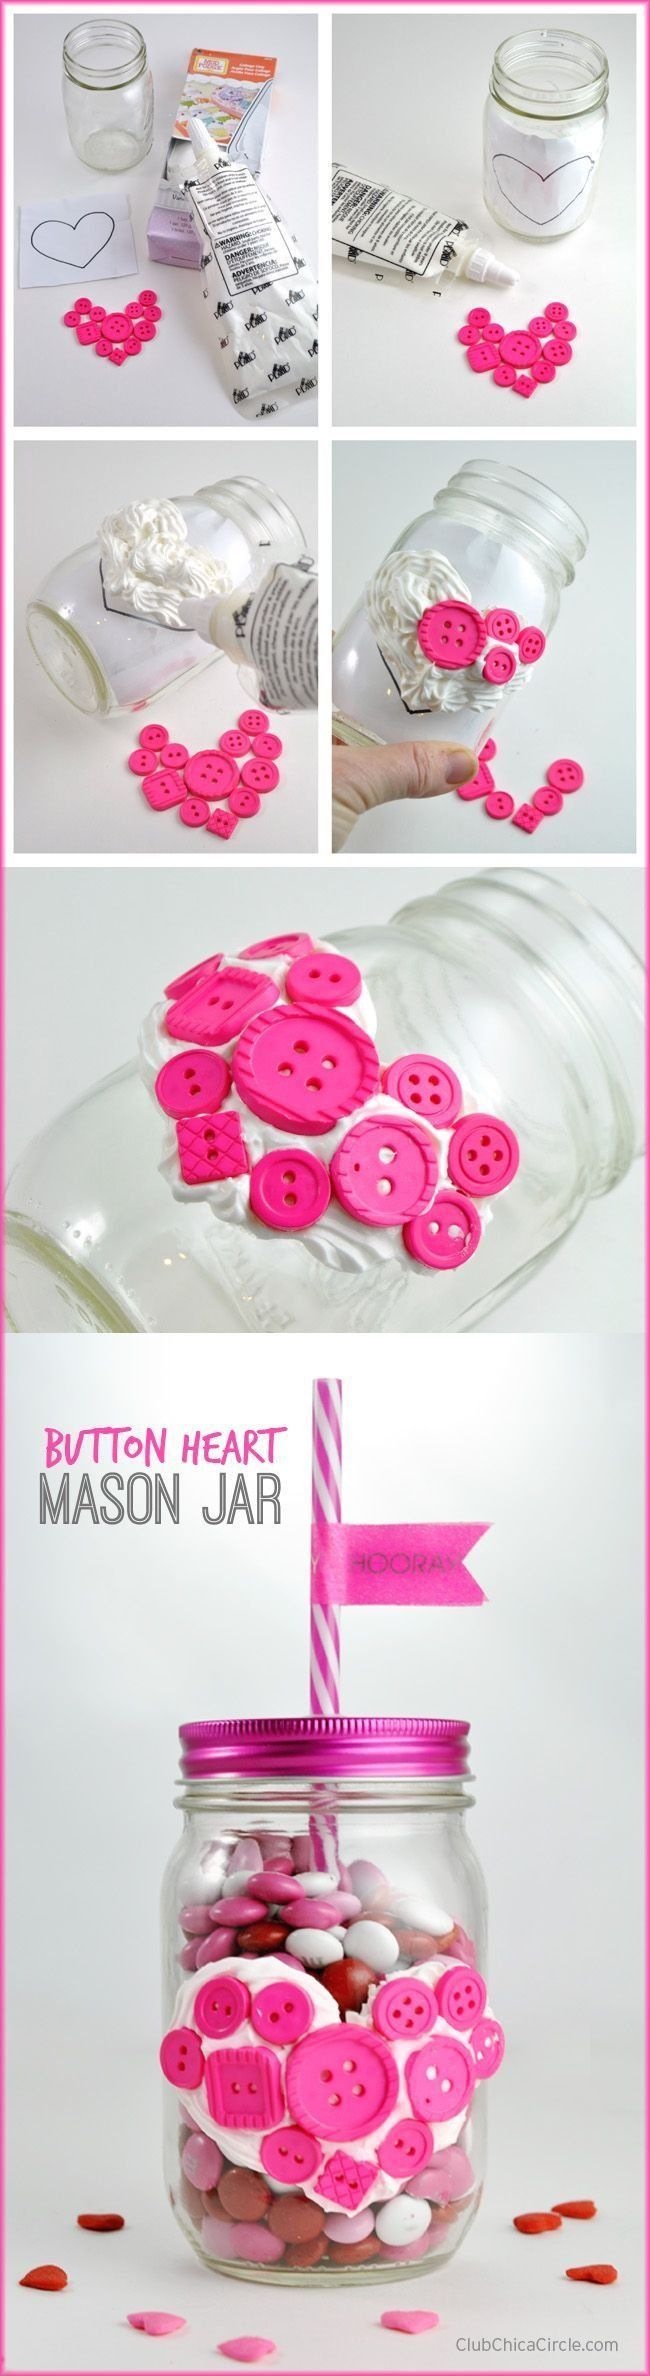 Button Heart Mason Jar with Collage Clay by Club Chica Circle.